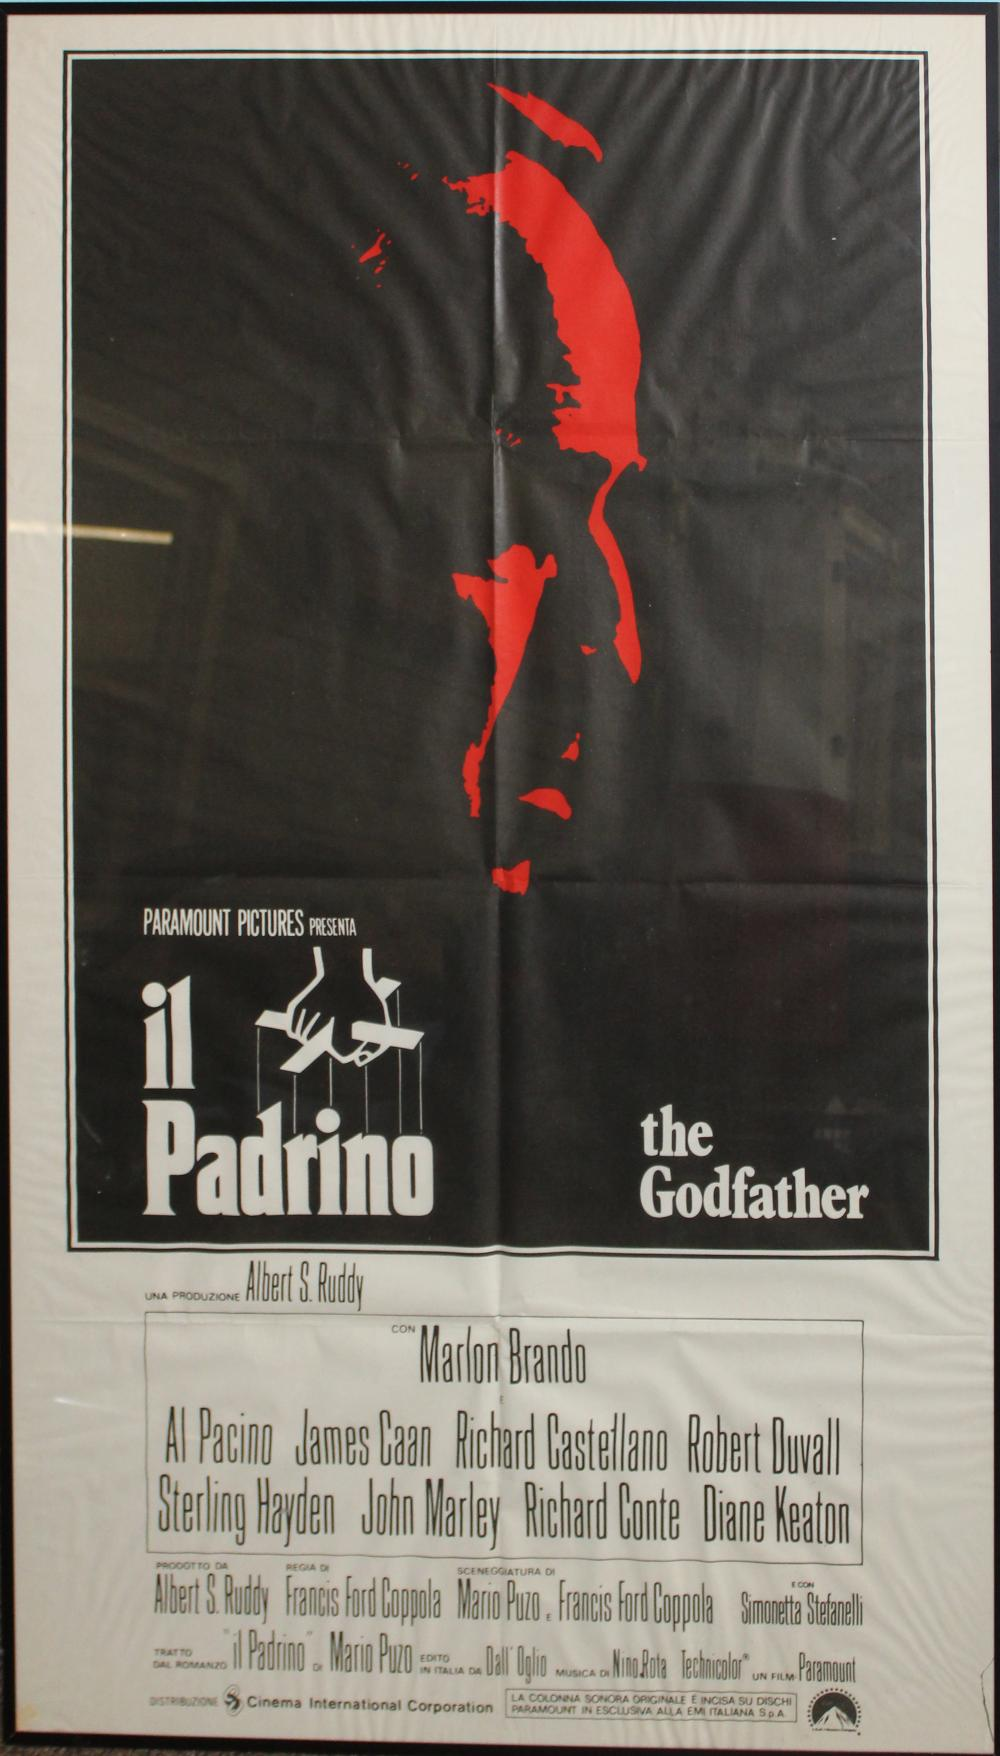 Il Padrino (The Godfather) Italian Release Poster